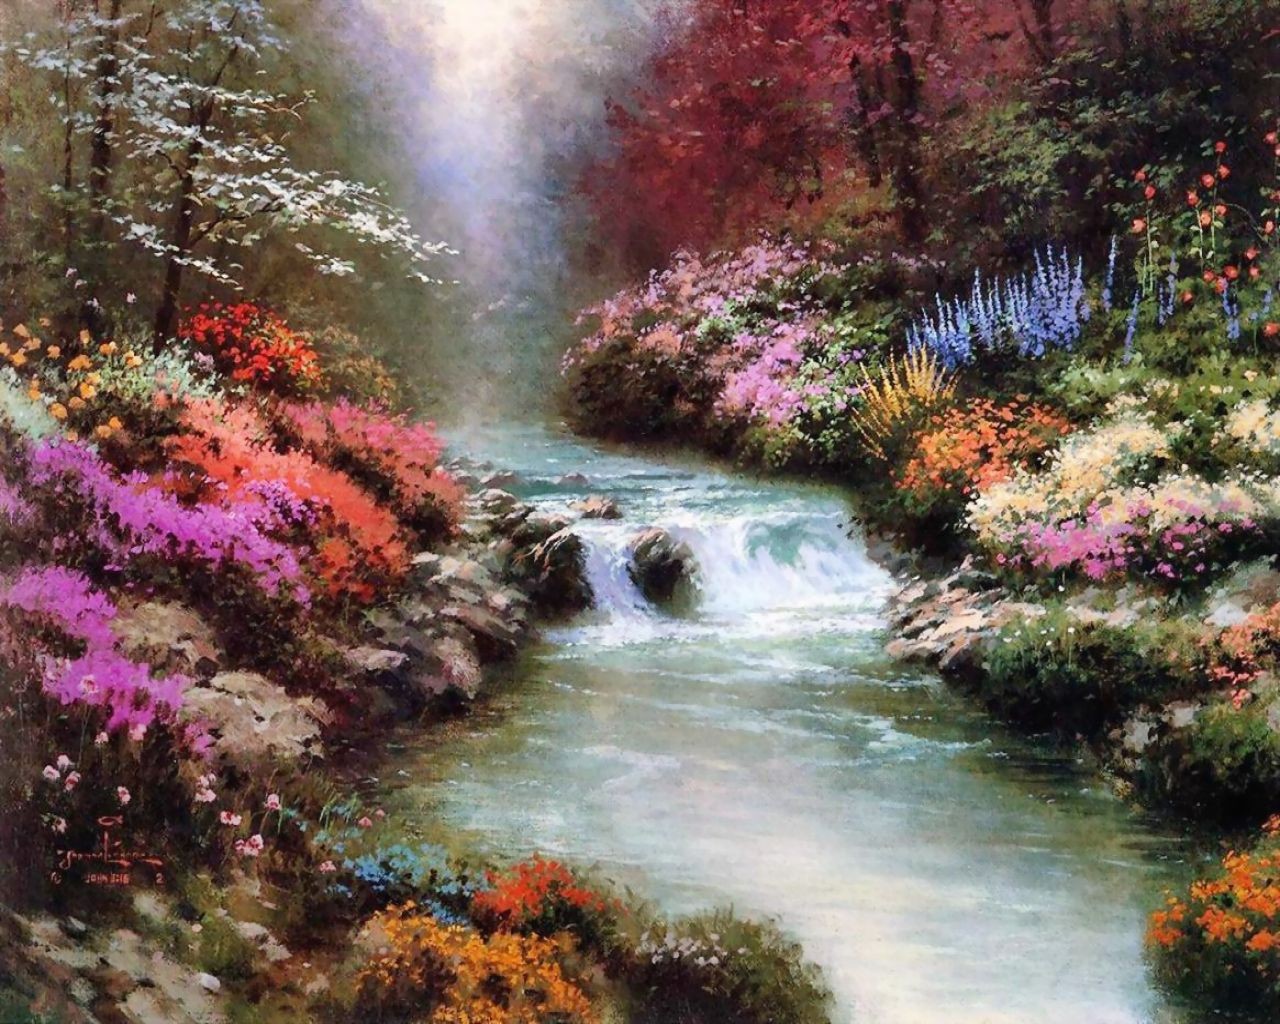 Thomas kinkade art Pictures desktop wallpaper : Thomas kinkade art of ...